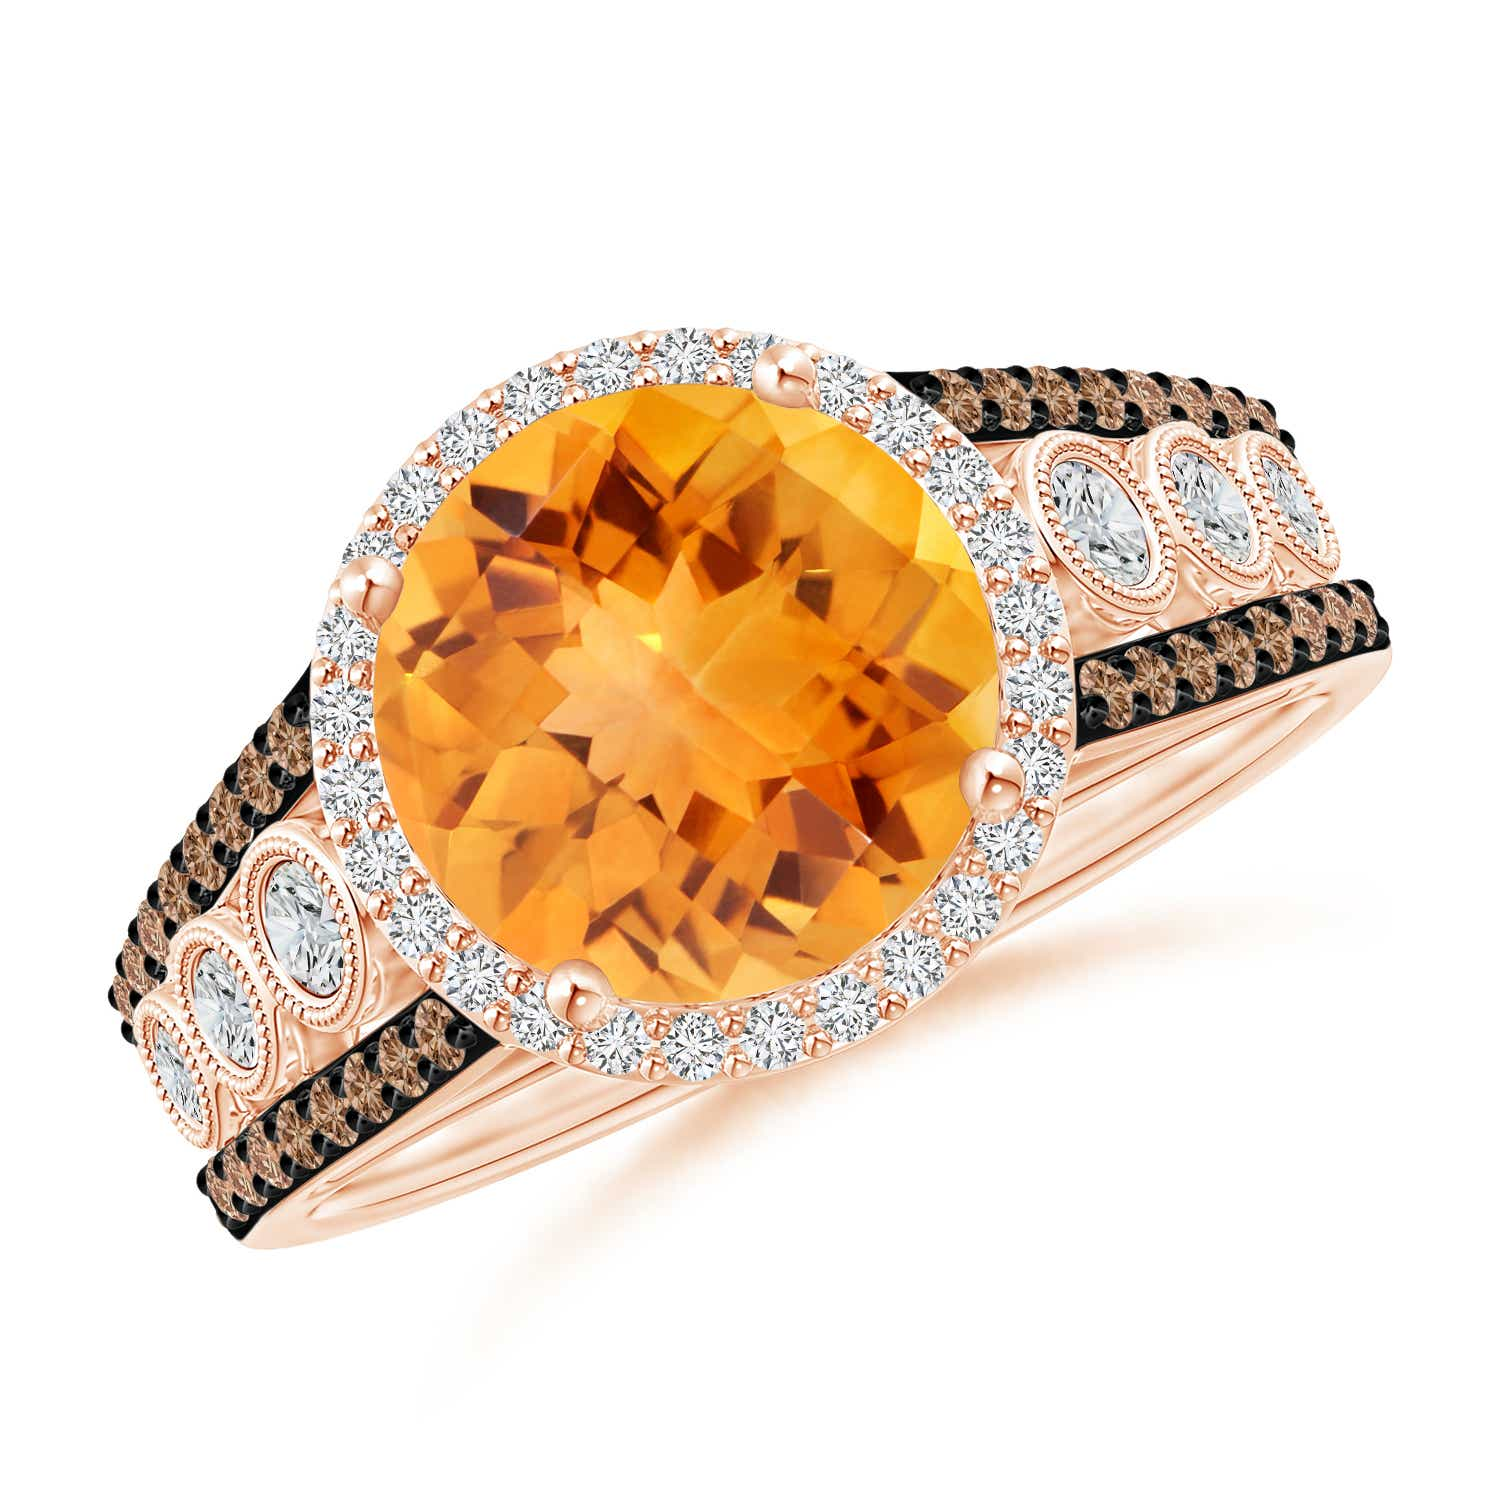 Round Citrine Halo Regal Ring with Diamond Accents - Angara.com